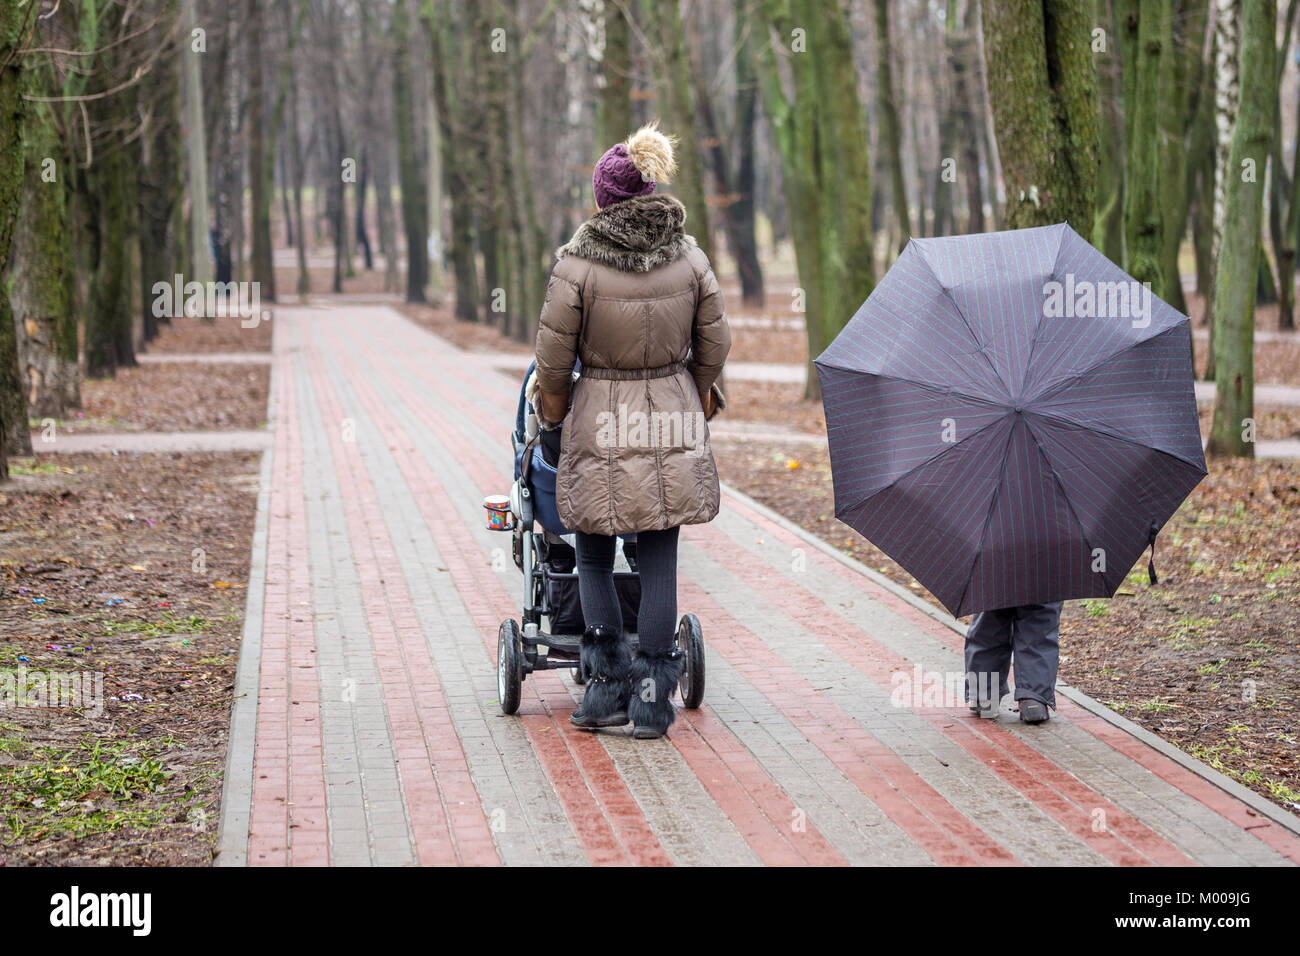 Newborn Umbrella Stroller Mom And Daughter Holding Umbrella And Walking Together With